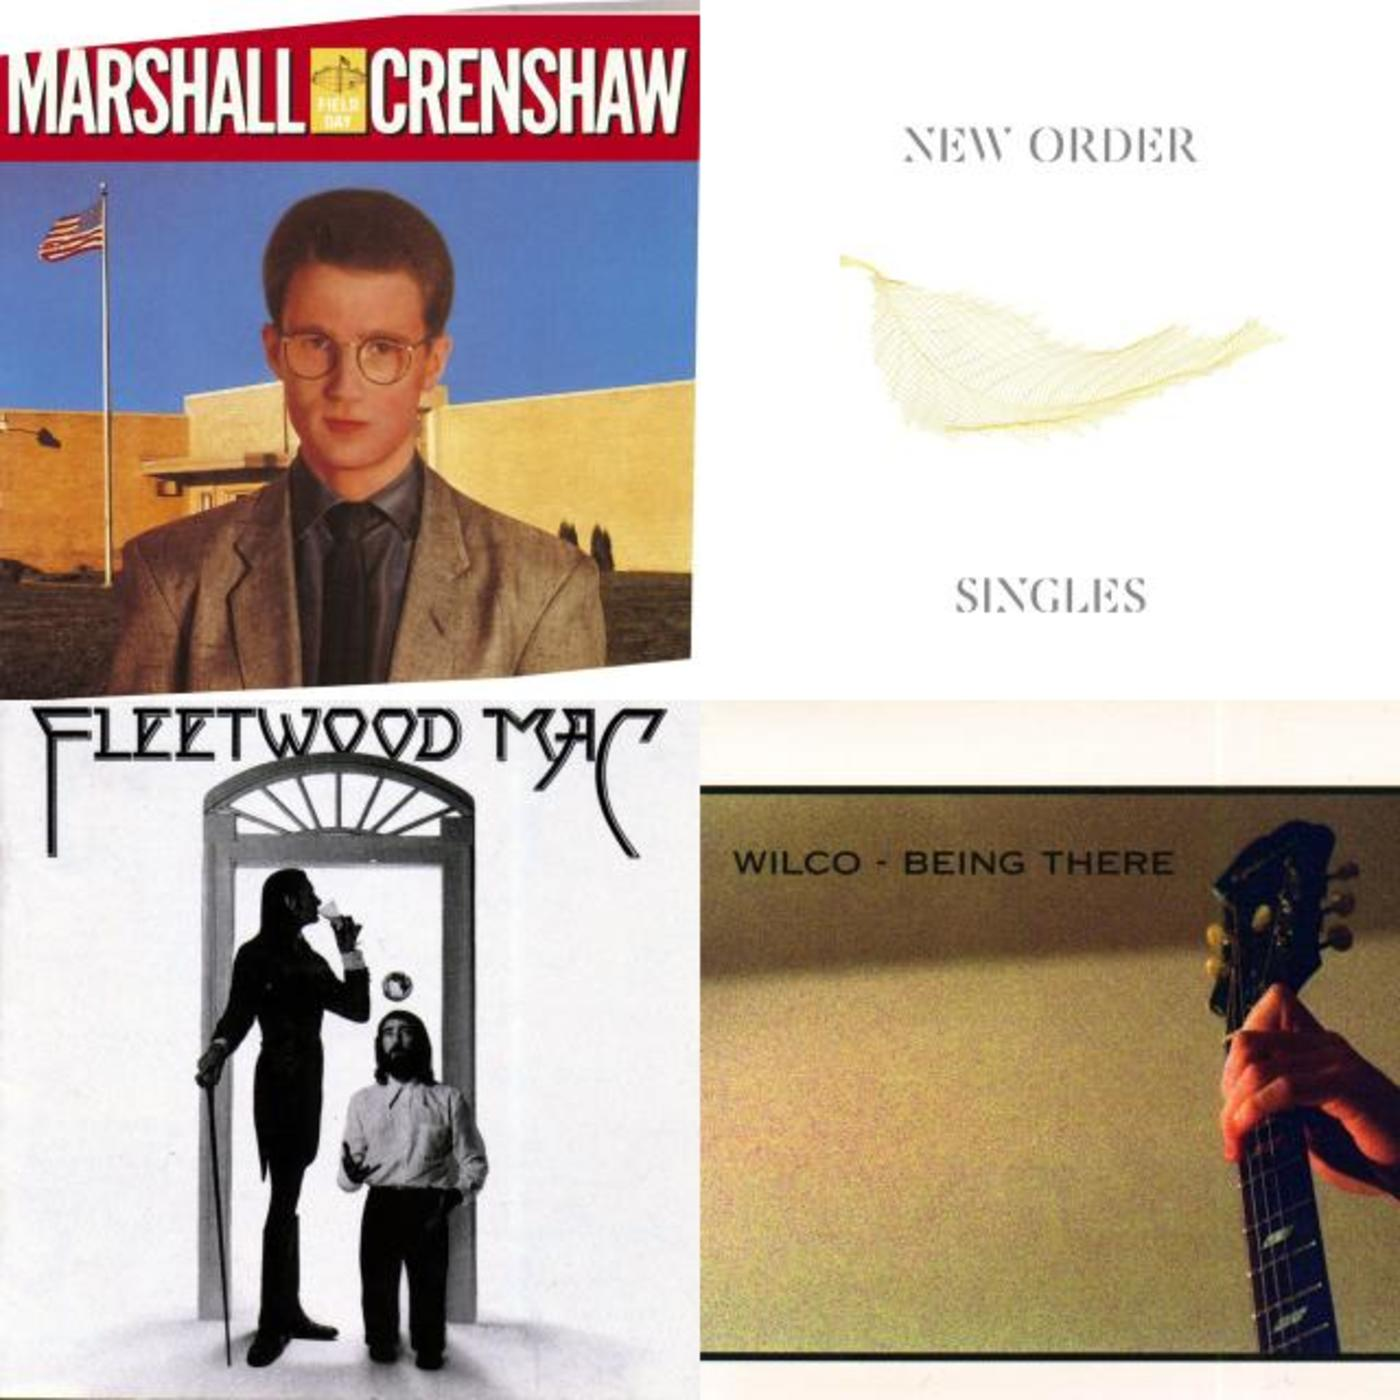 Every Day of the Week - New Order, Wilco, Fleetwood Mac, Marshall Crenshaw, Ry Cooder, Duane Eddy, Freddie King, Della Rese, Tori Amos, Death Cab For Cutie, The Pogues, Steve Wynn